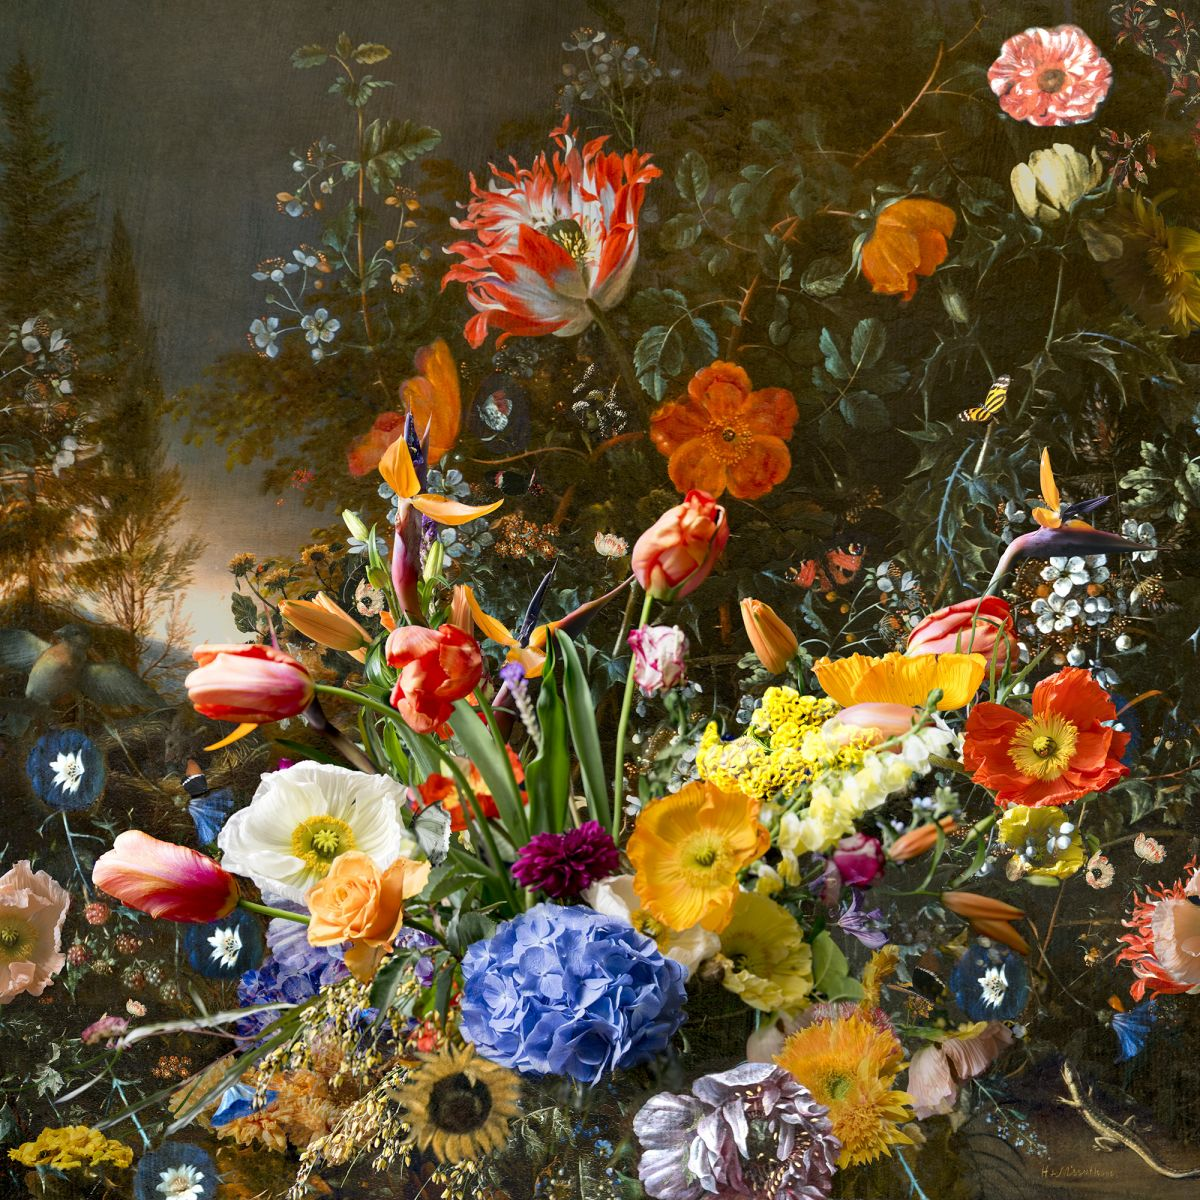 Kunst: still life with flowers and bird's nest van kunstenaar Hans Withoos